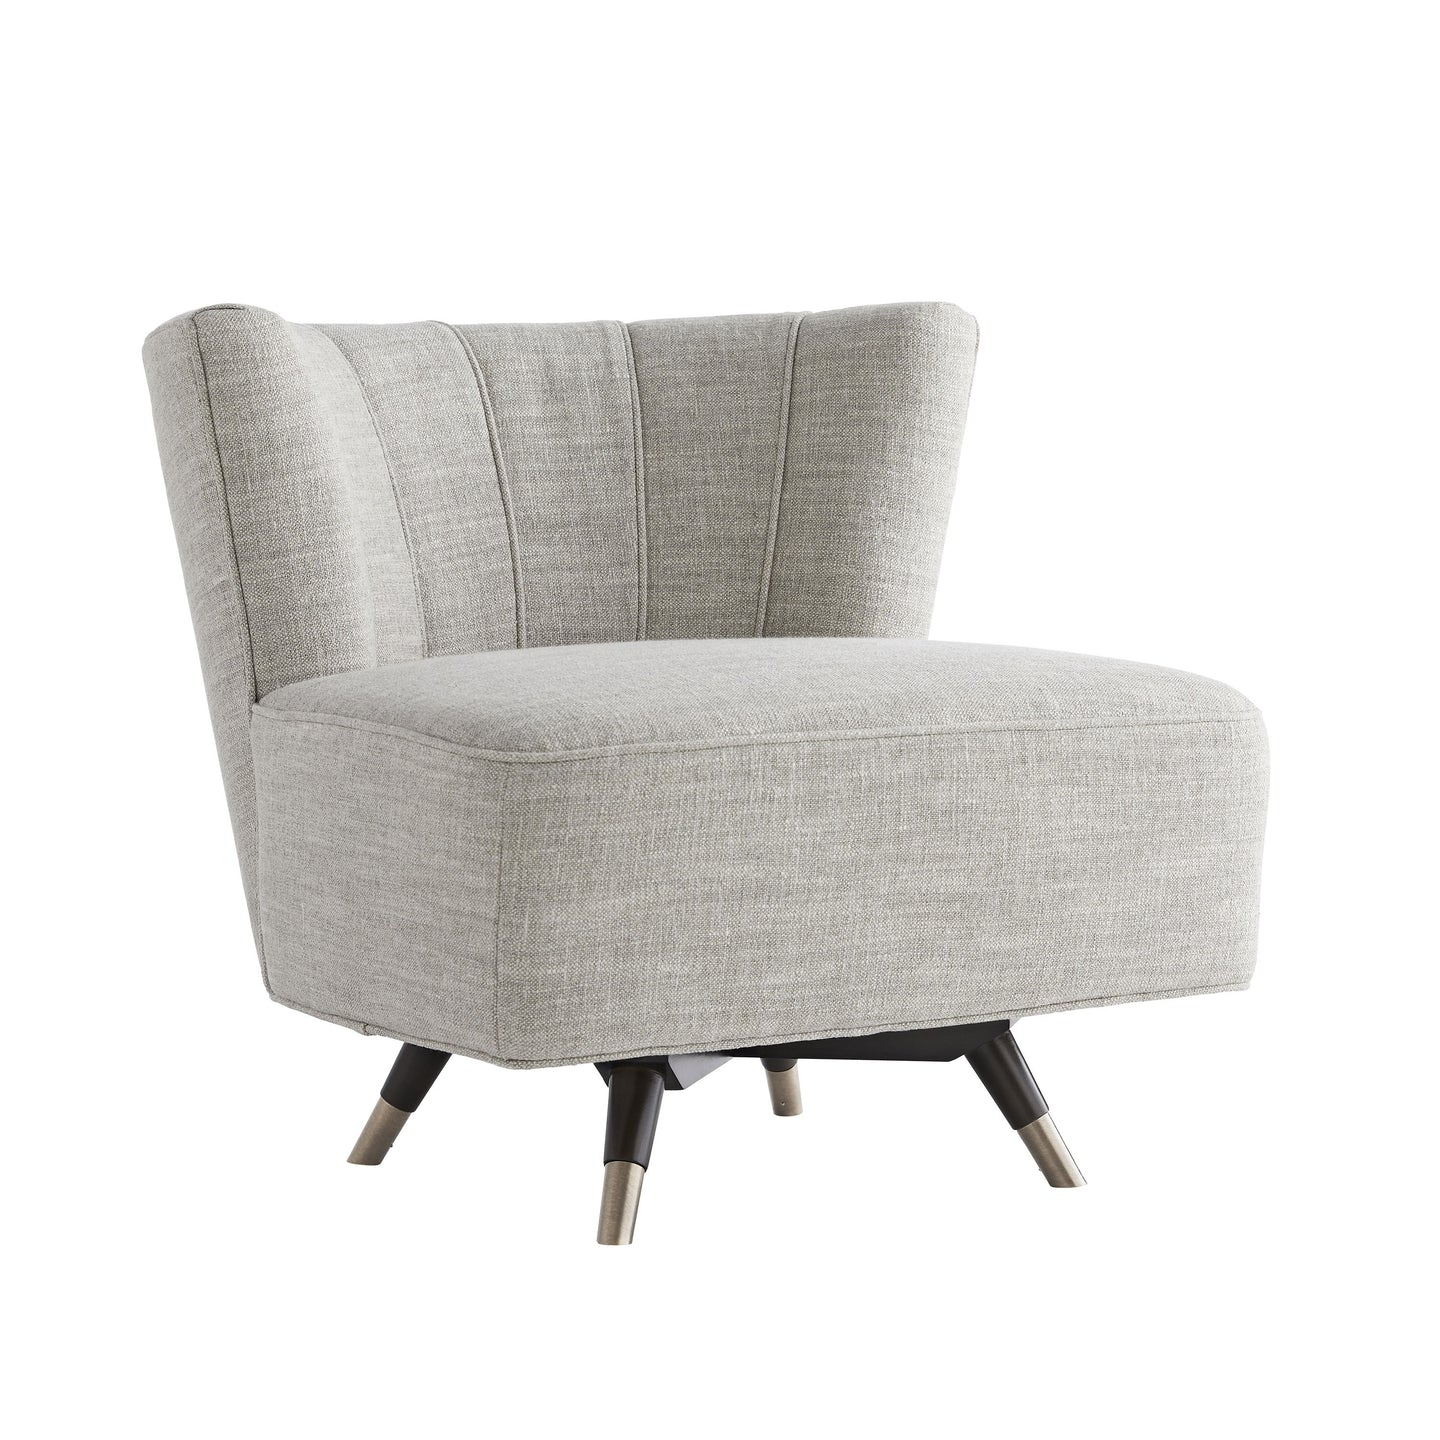 Marion Chair Oyster Linen Grey Ash